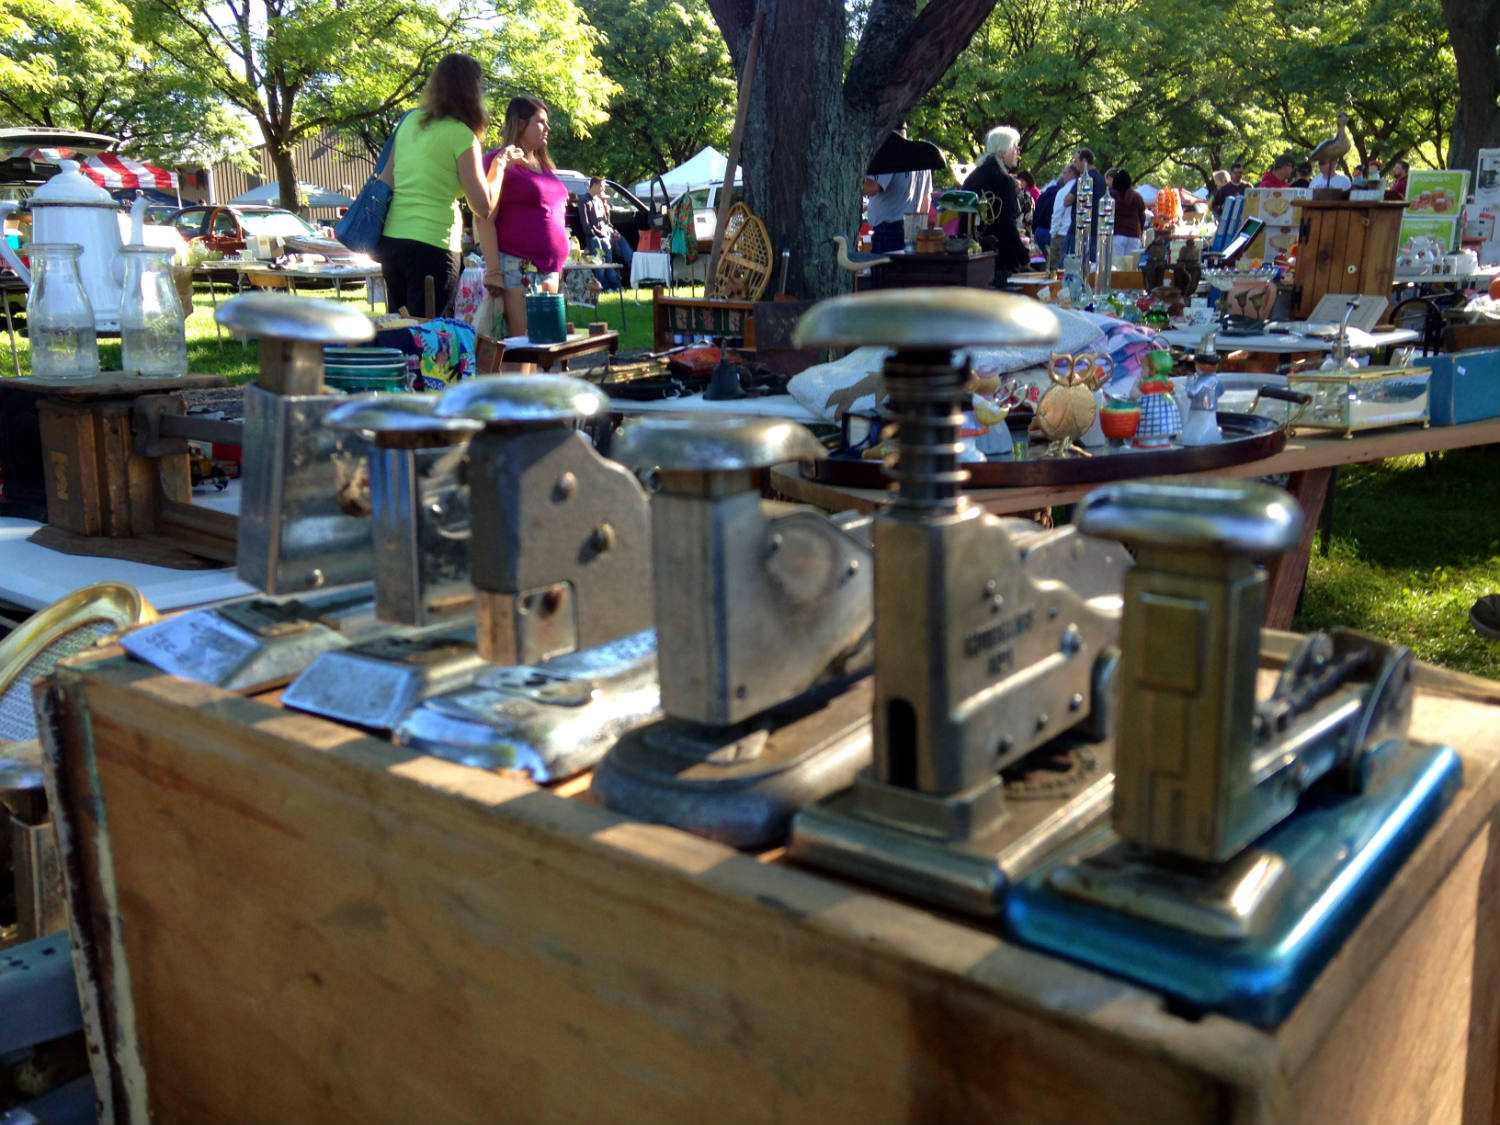 East Avon Flea Market - Staplers